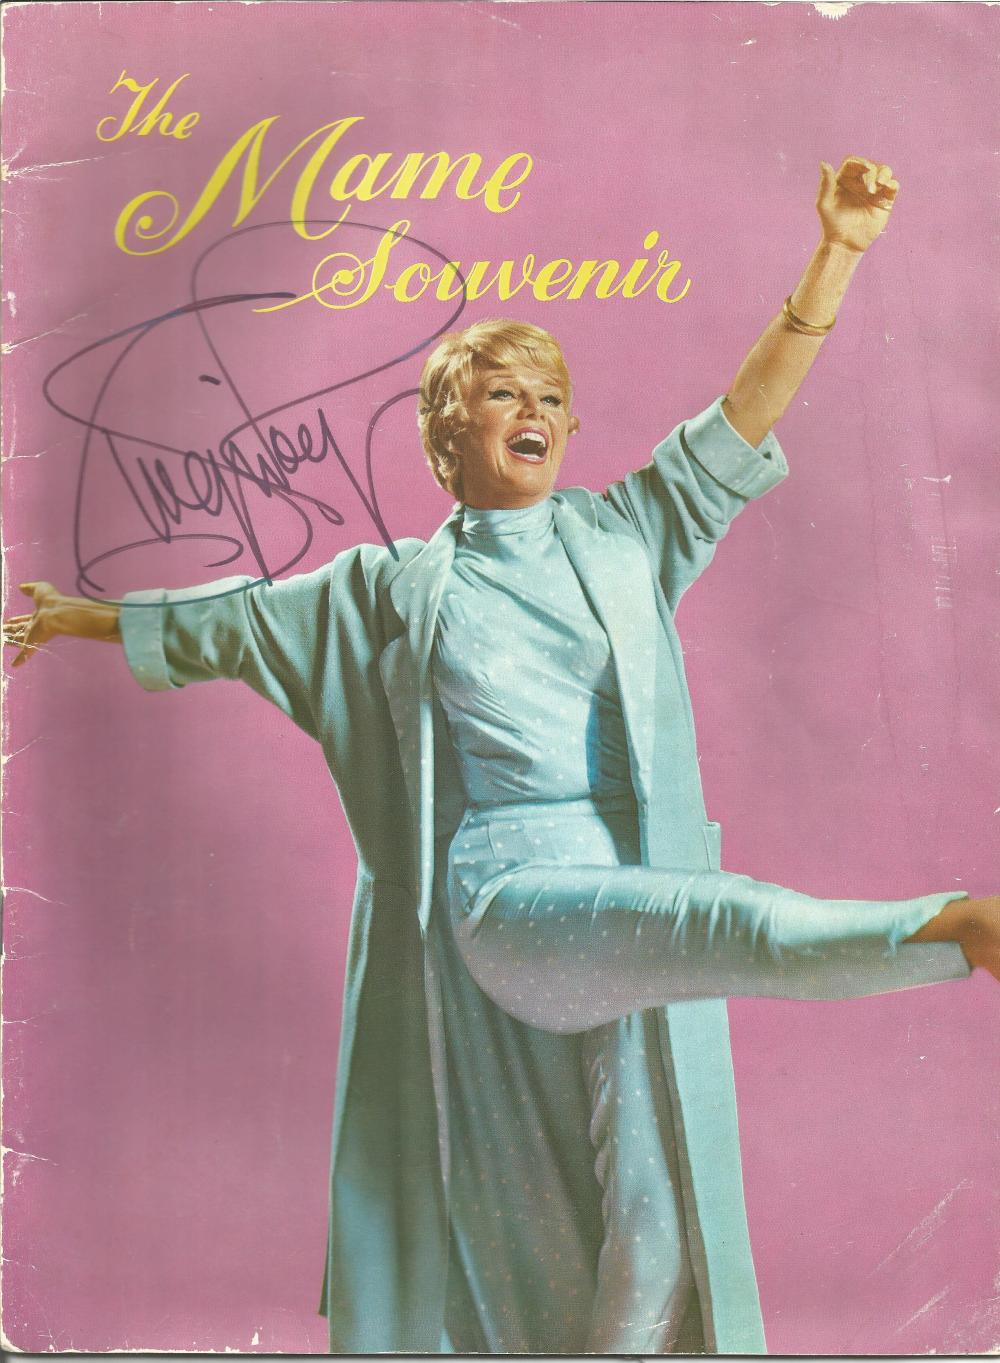 Ginger Rogers signed souvenir program for Mame. Signed on front cover. Good Condition. All signed